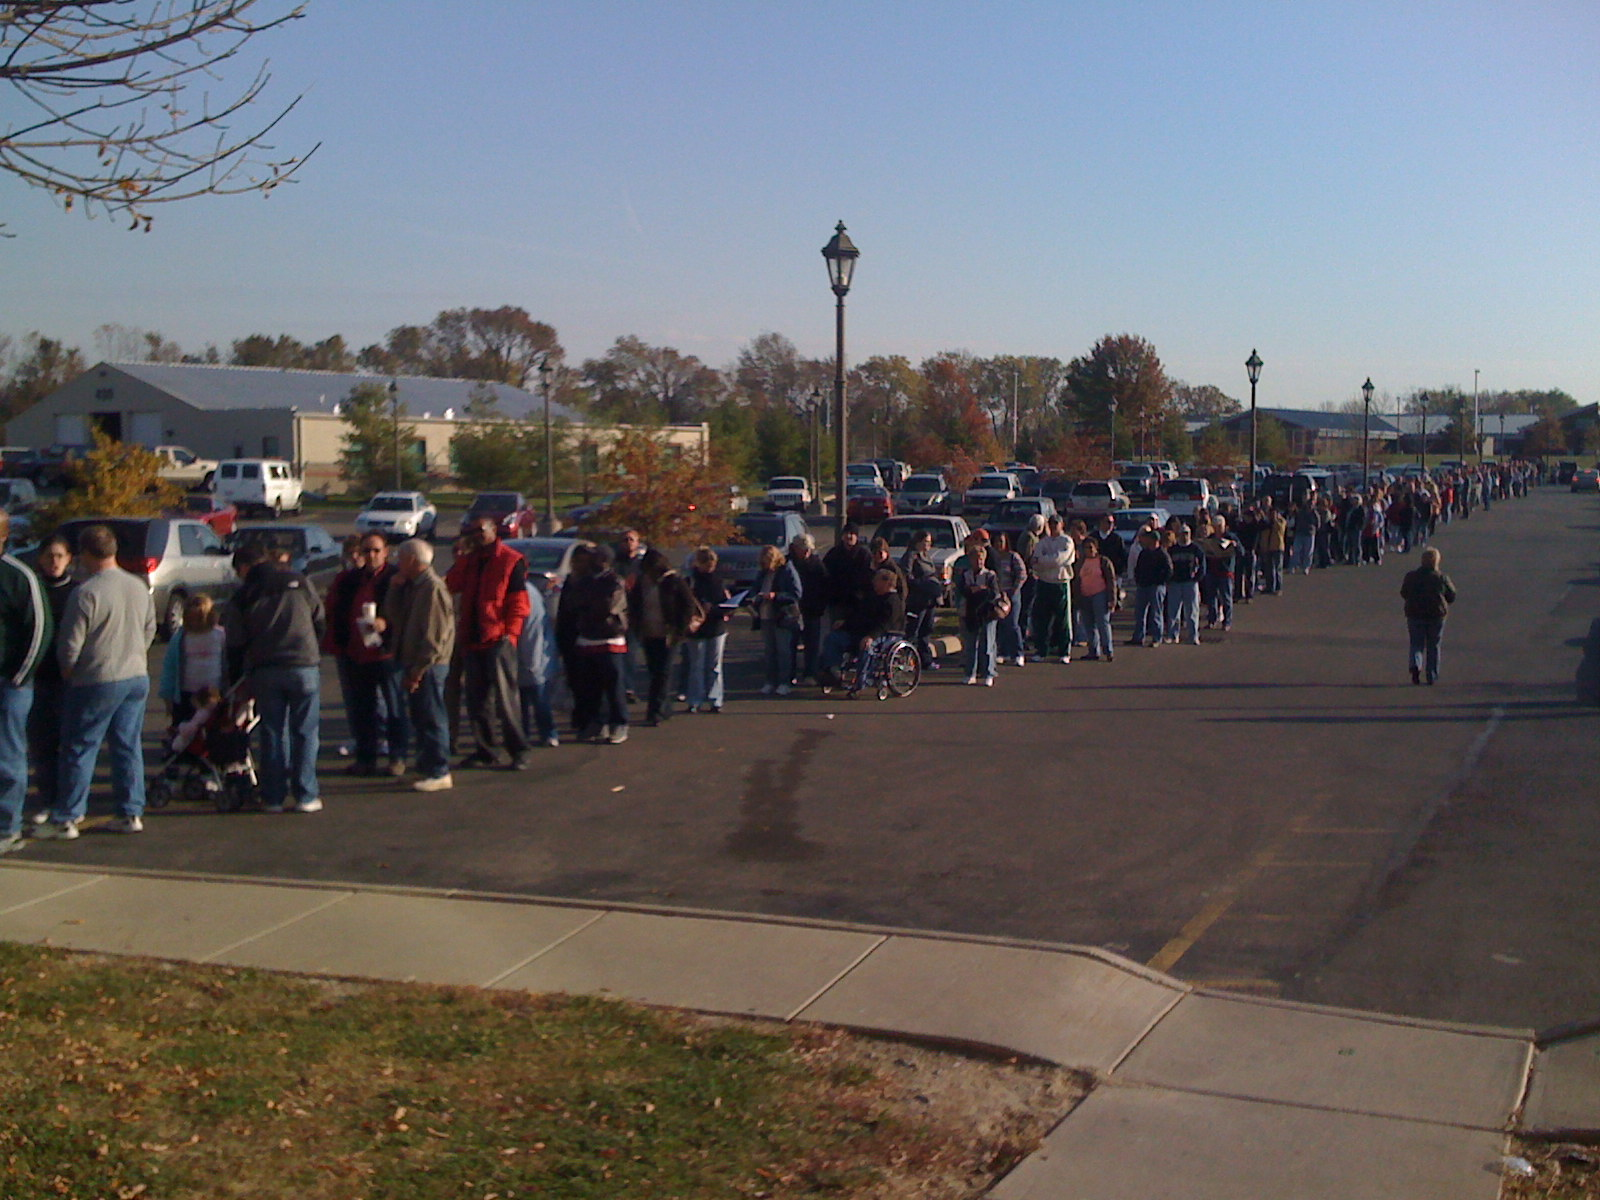 Voting queue in Ohio 2008